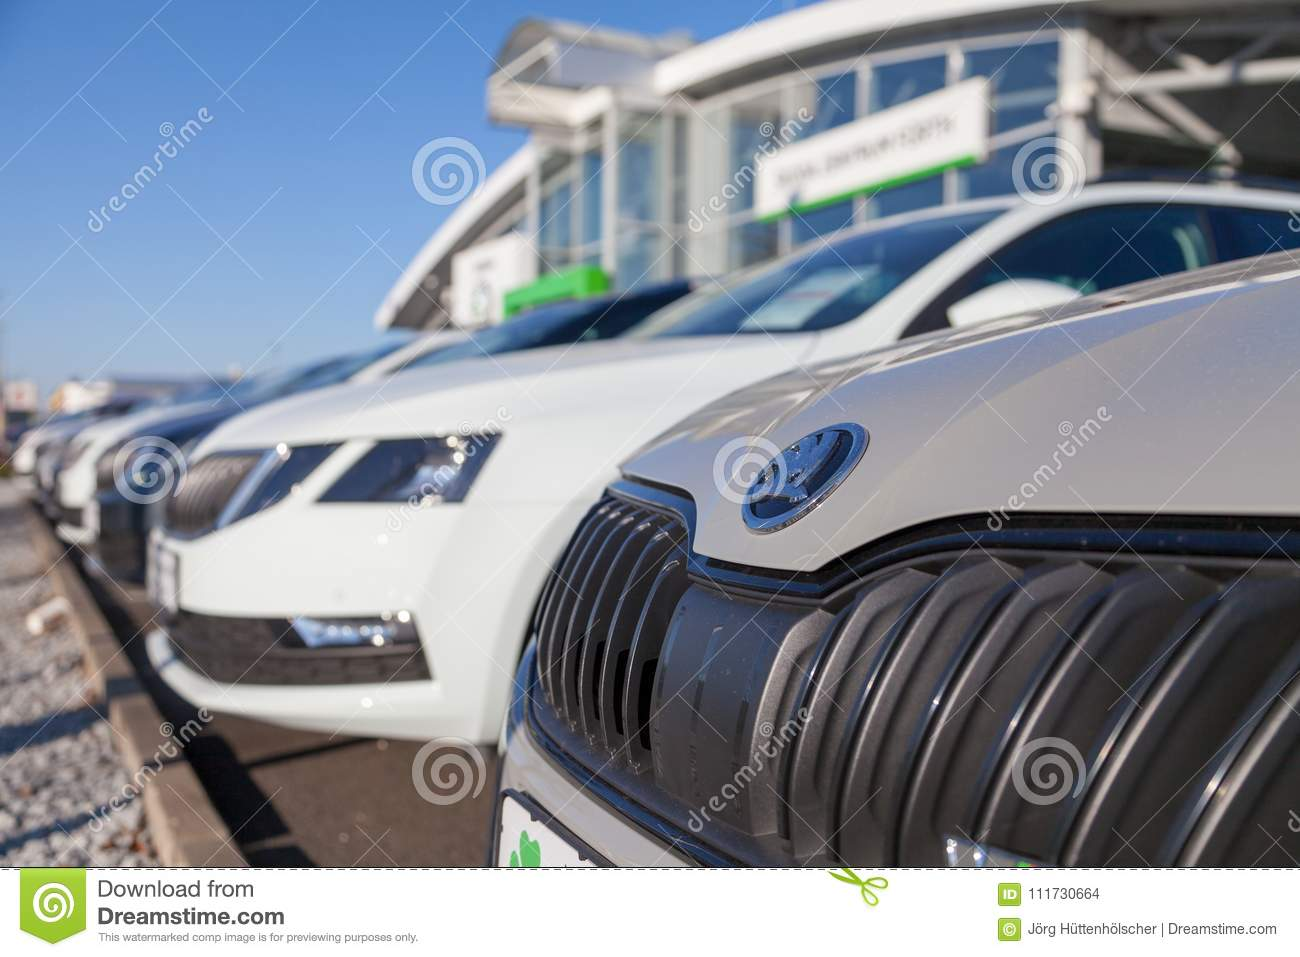 Skoda Logo On A Skoda Car At A Car Dealer In Germany Editorial Stock Image Image Of Klement Automotive 111730664